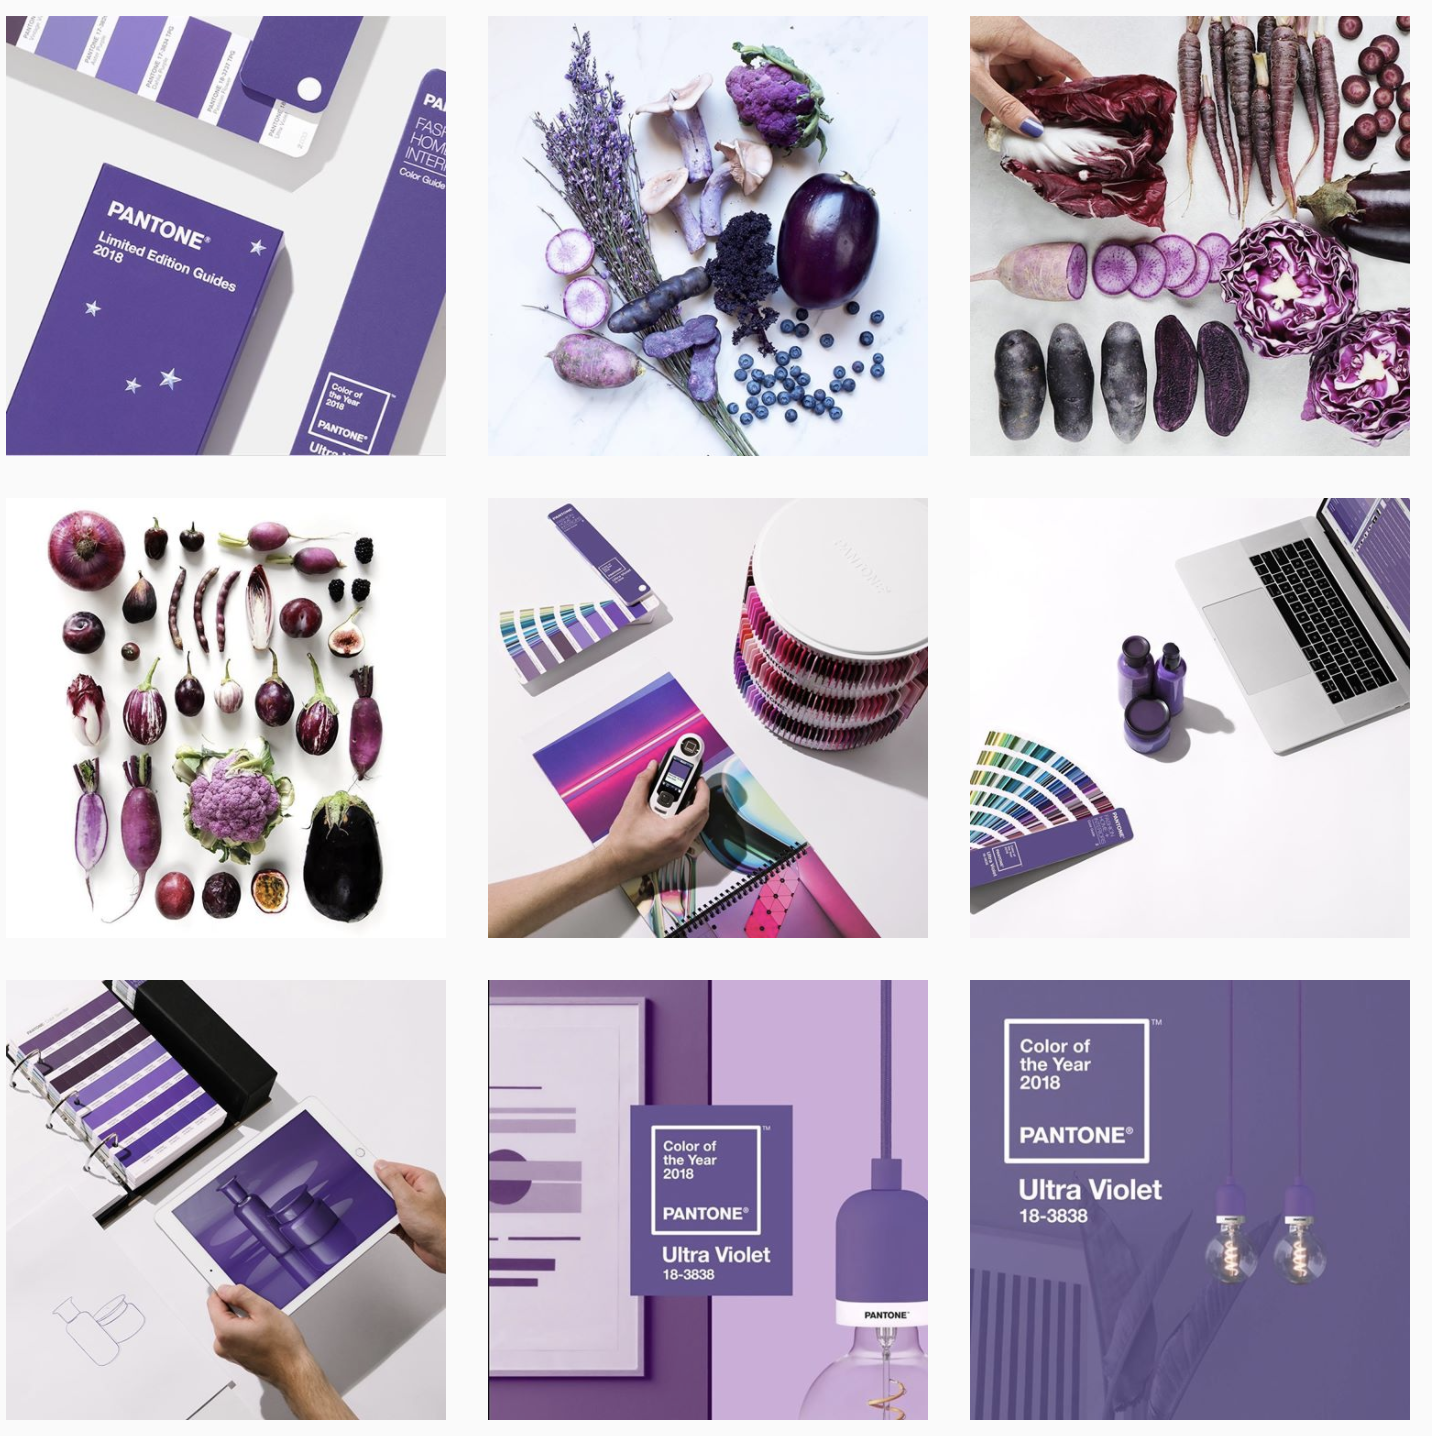 Instagram Feed Ideas: Brand Colors - Schedugram